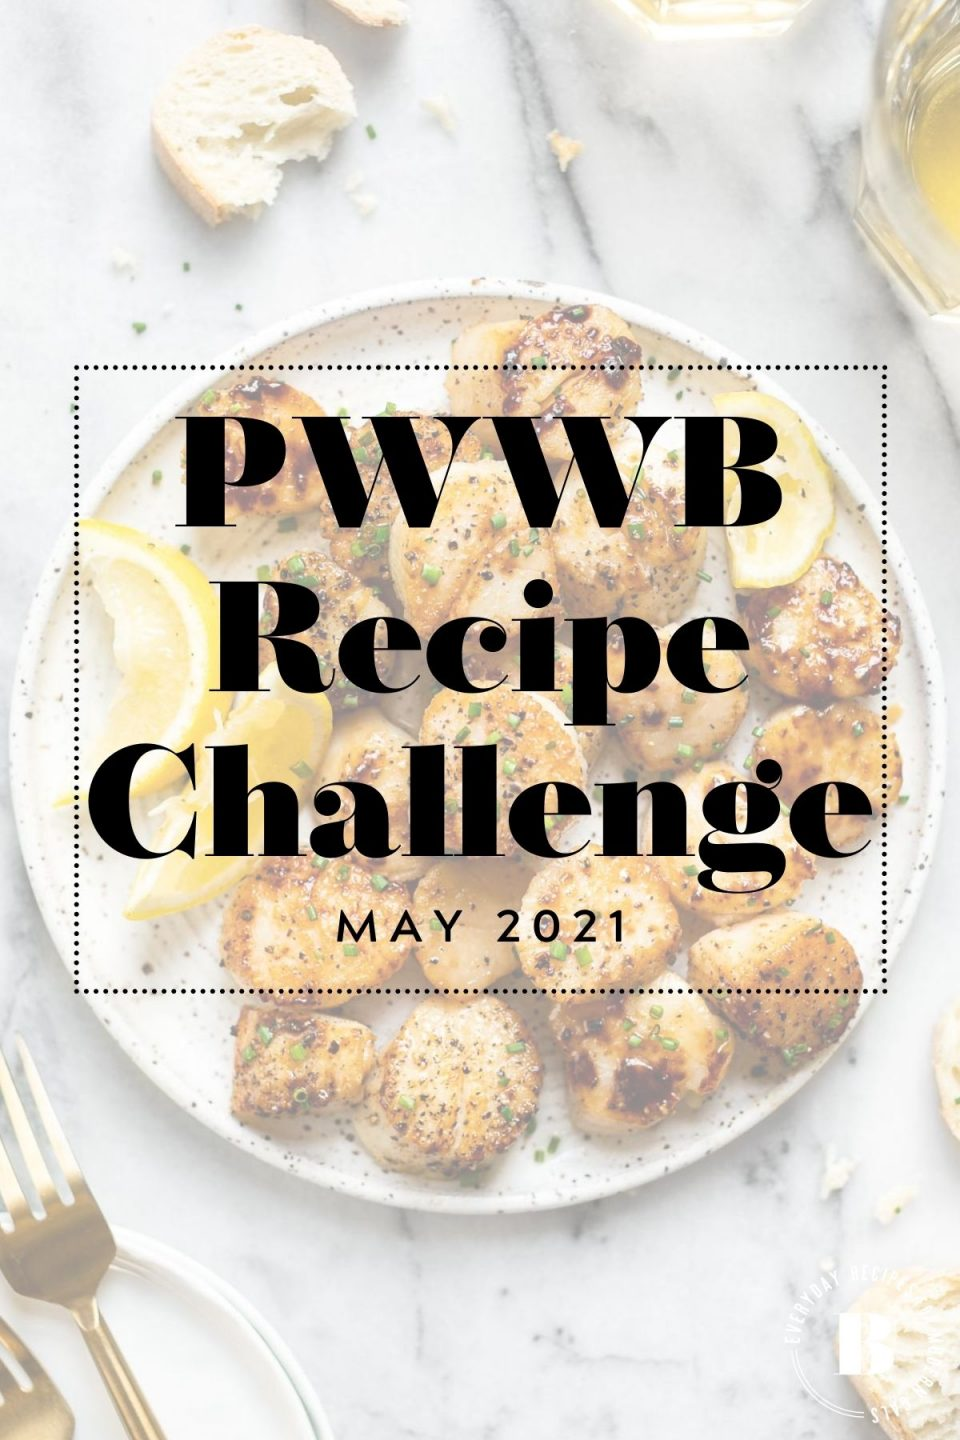 "Perfectly pan-seared scallops shown on a white ceramic plate with grayscale overlay & text box ""PWWB Recipe Challenge - May 2021"" over top. The PWWB logo is on the bottom right-hand side of the graphic."